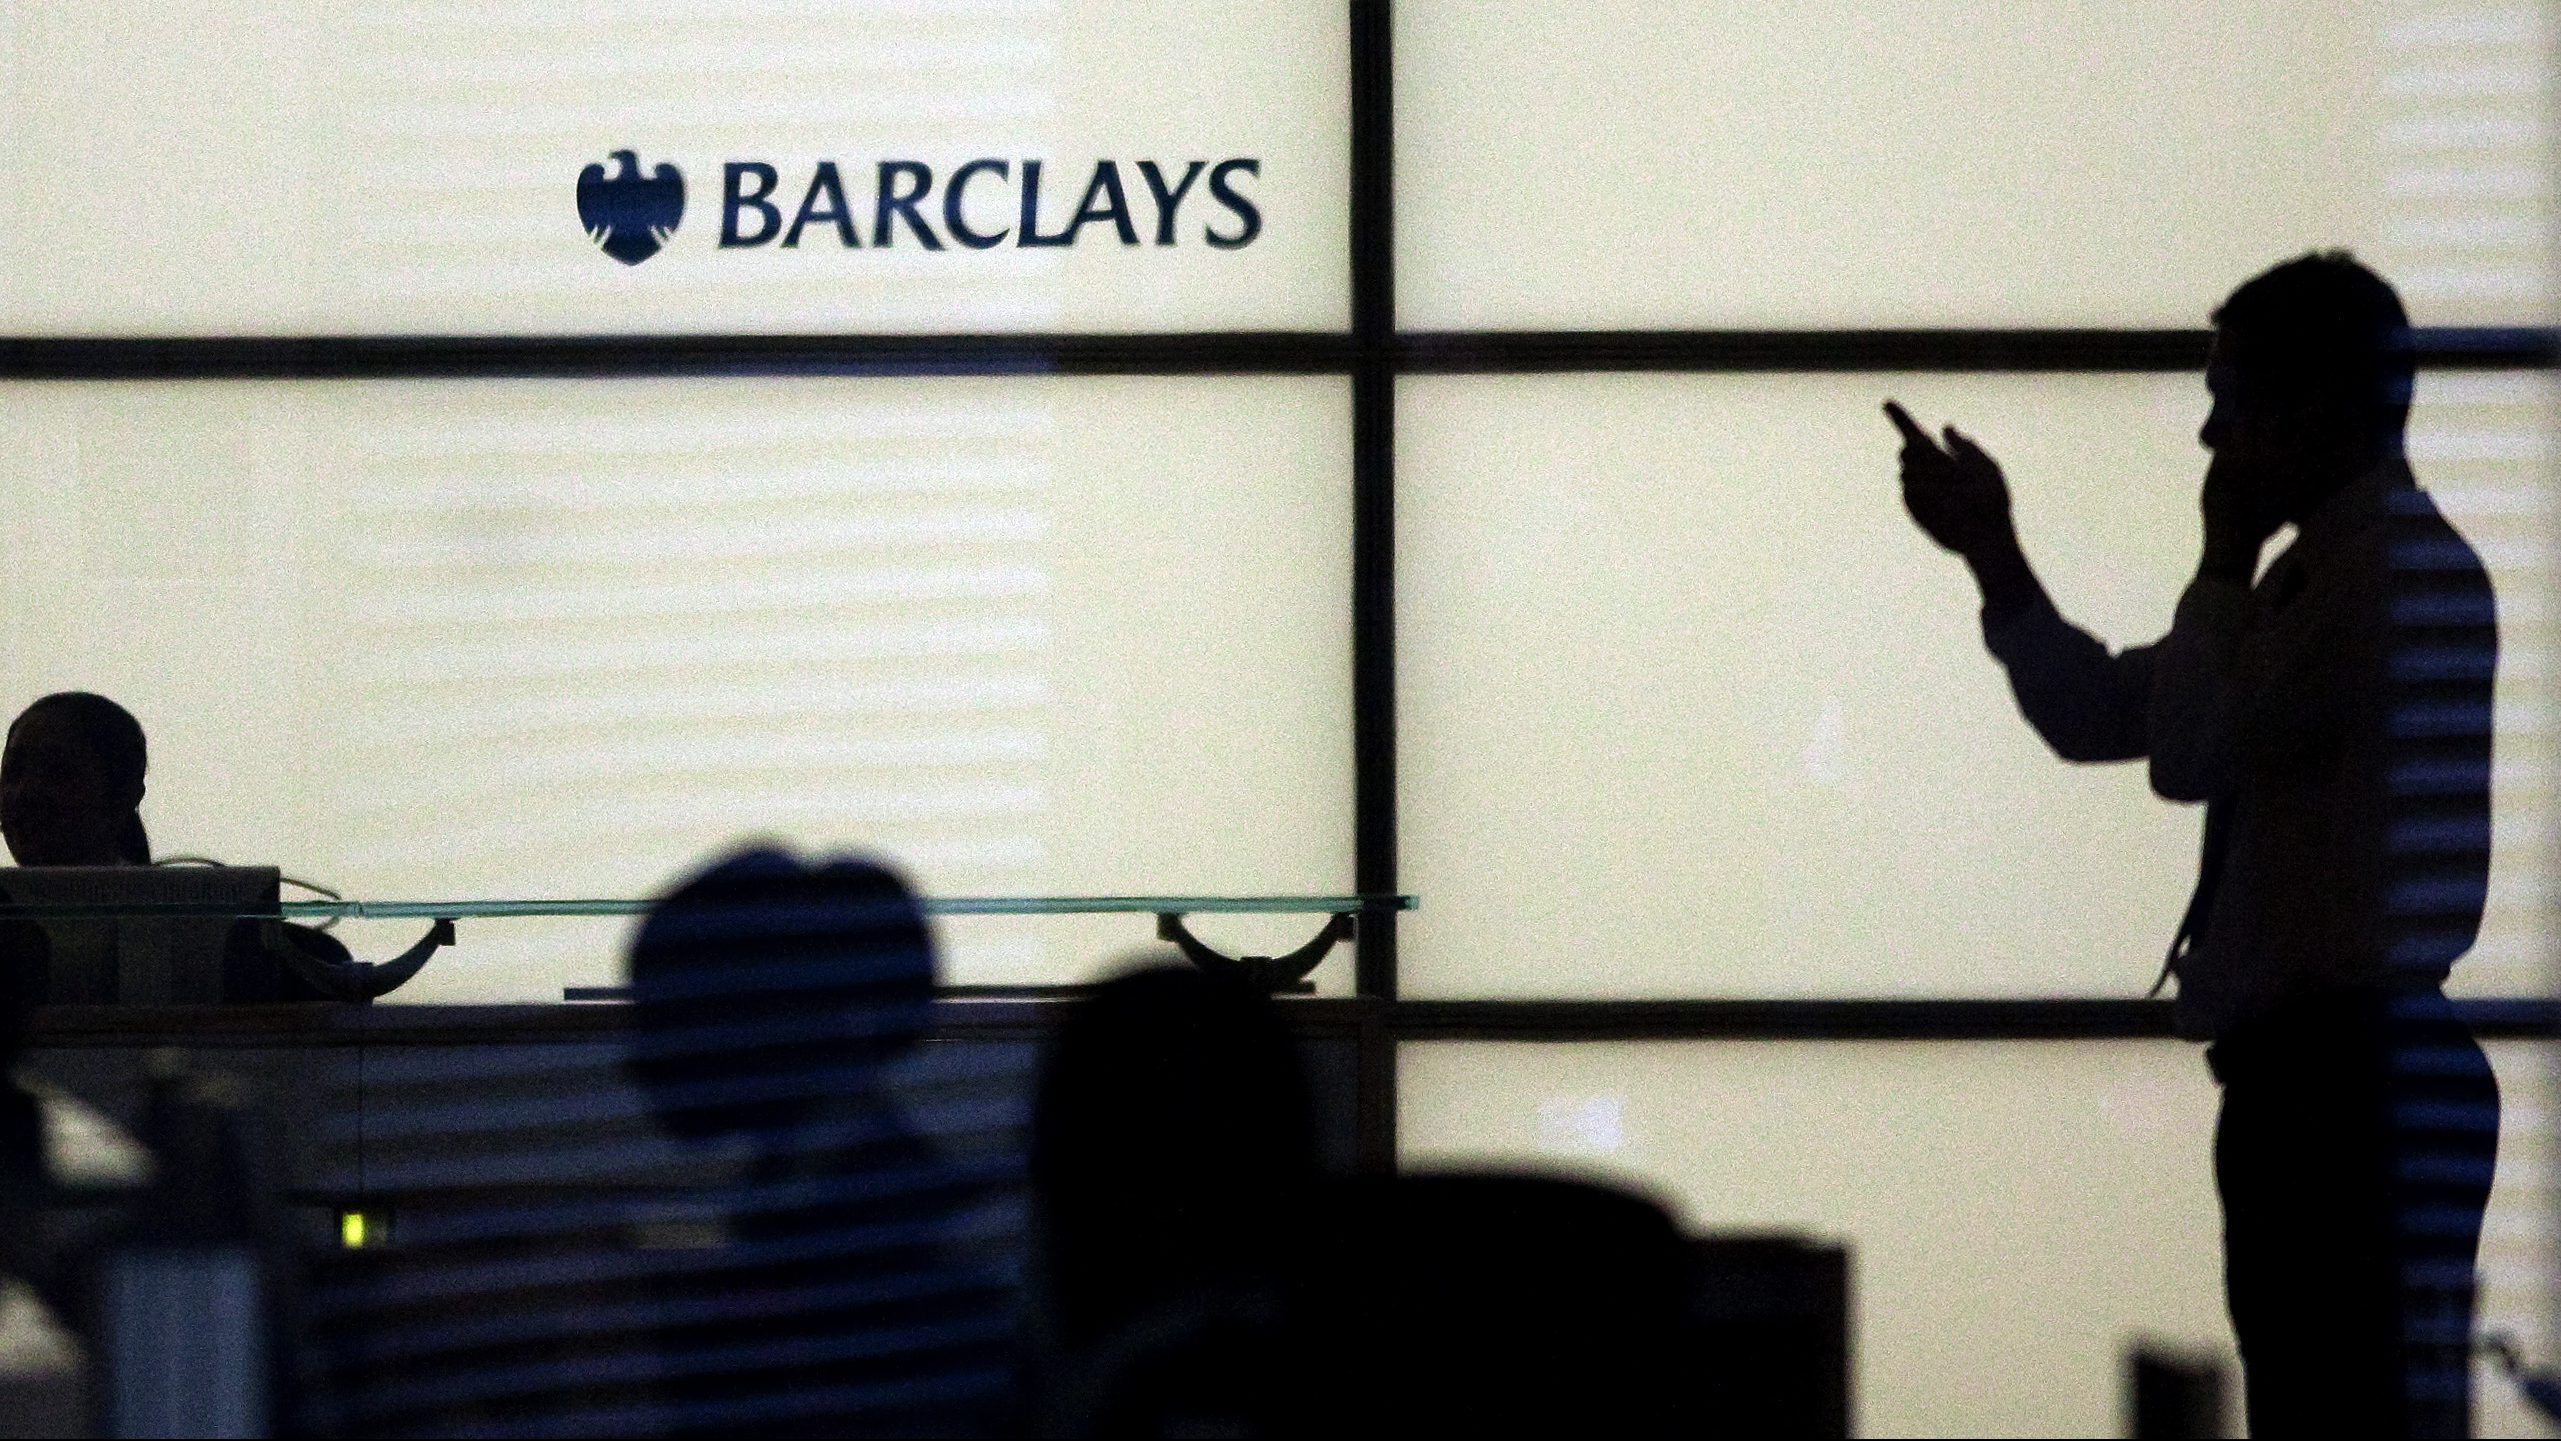 A man gestures whilst speaking on a mobile telephone at Barclays Bank in the financial district of Canary Wharf in London January 19, 2009. Britain unveiled a second support package on Monday for struggling banks to try and get lending flowing again in an economy lurching into its first recession since the early 1990s.